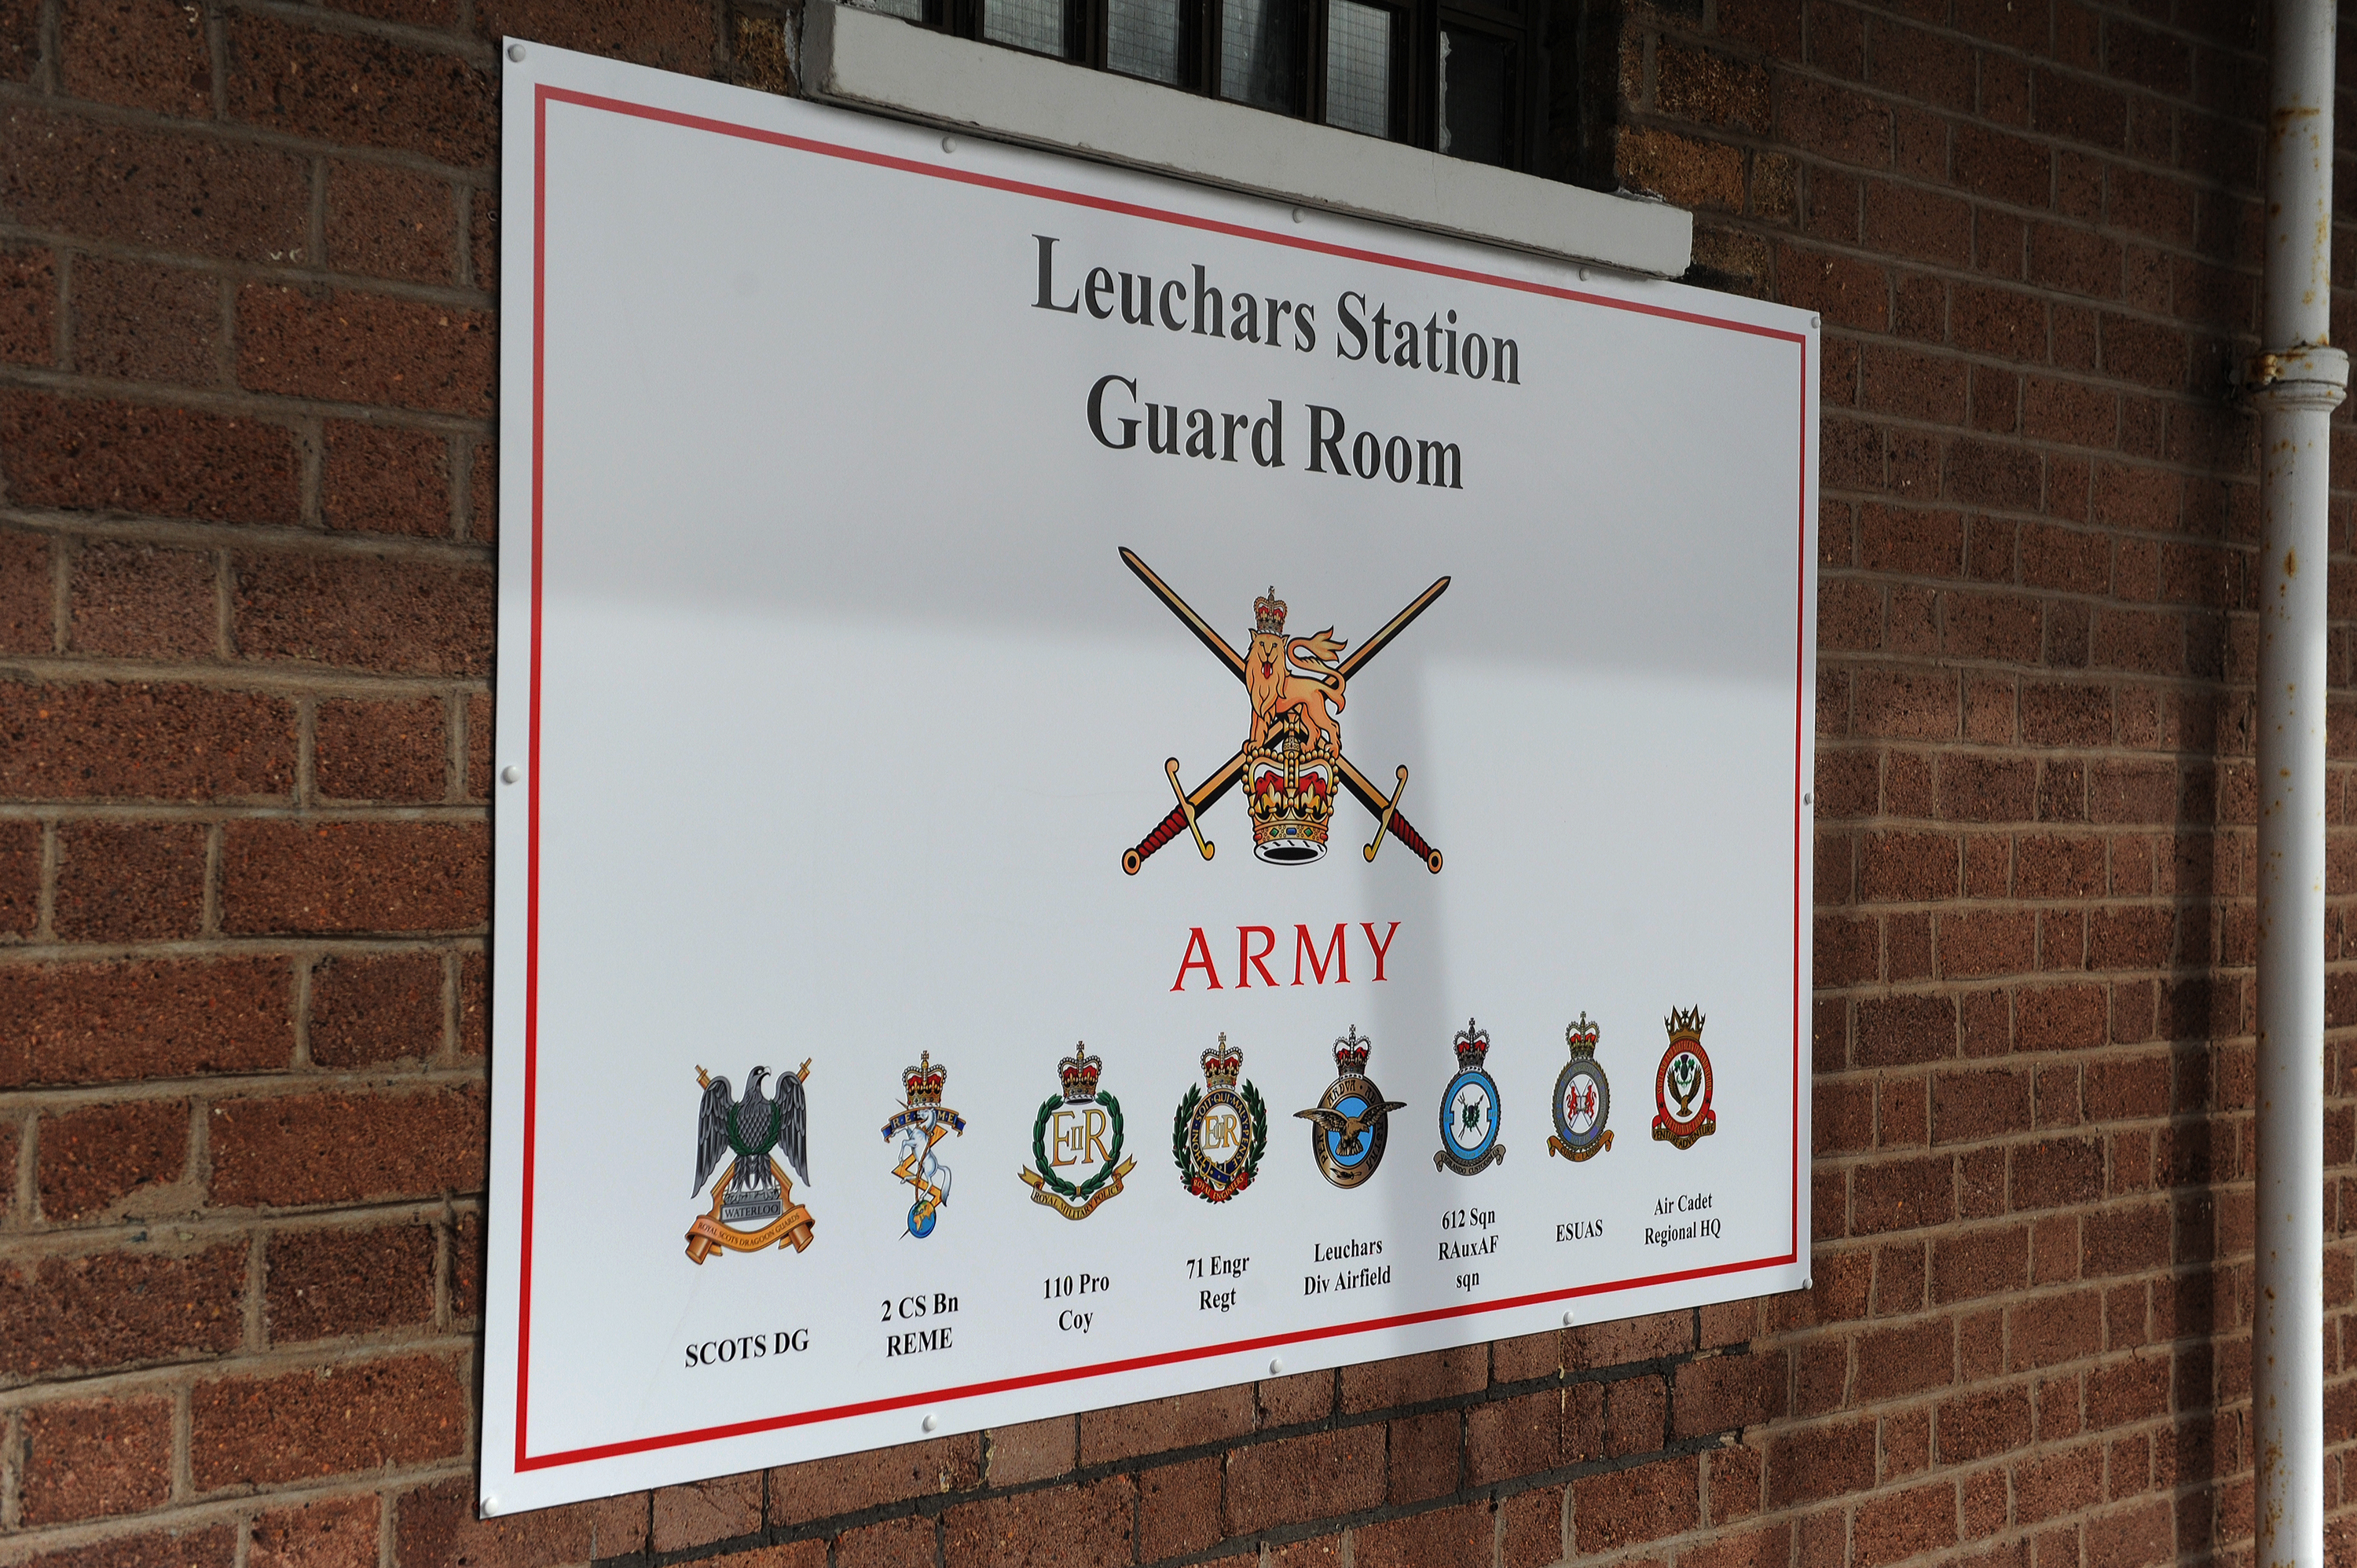 Personnel at Leuchars Station are among those to receive mitigation payments from the UK Government.